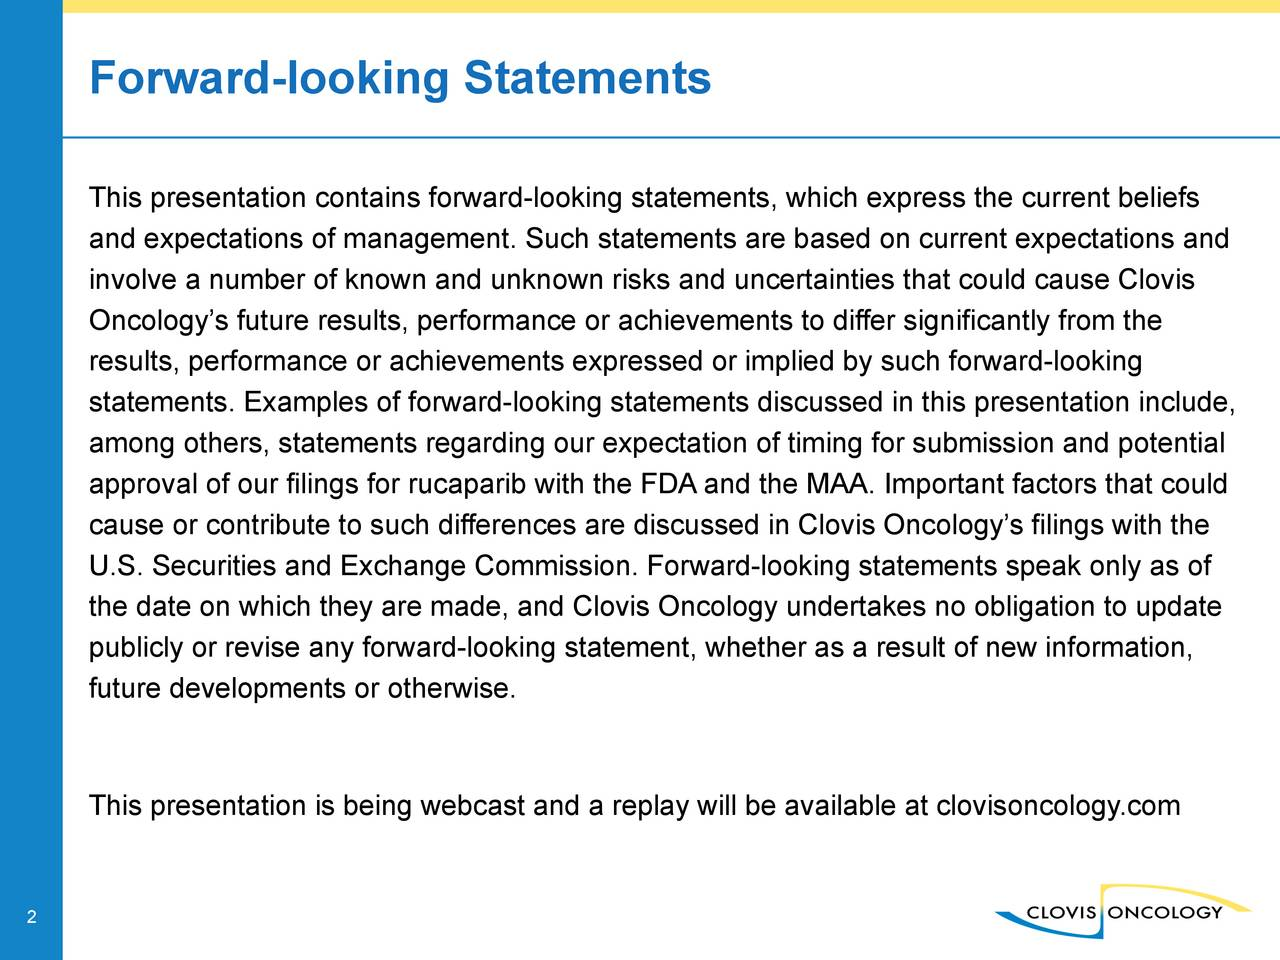 This presentation contains forward-looking statements, which express the current beliefs and expectations of management. Such statements are based on current expectations and involve a number of known and unknown risks and uncertainties that could cause Clovis Oncologys future results, performance or achievements to differ significantly from the results, performance or achievements expressed or implied by such forward-looking statements. Examples of forward-looking statements discussed in this presentation include, among others, statements regarding our expectation of timing for submission and potential approval of our filings for rucaparib with the FDA and the MAA. Important factors that could cause or contribute to such differences are discussed in Clovis Oncologys filings with the U.S. Securities and Exchange Commission. Forward-looking statements speak only as of the date on which they are made, and Clovis Oncology undertakes no obligation to update publicly or revise any forward-looking statement, whether as a result of new information, future developments or otherwise. This presentation is being webcast and a replay will be available at clovisoncology.com 2